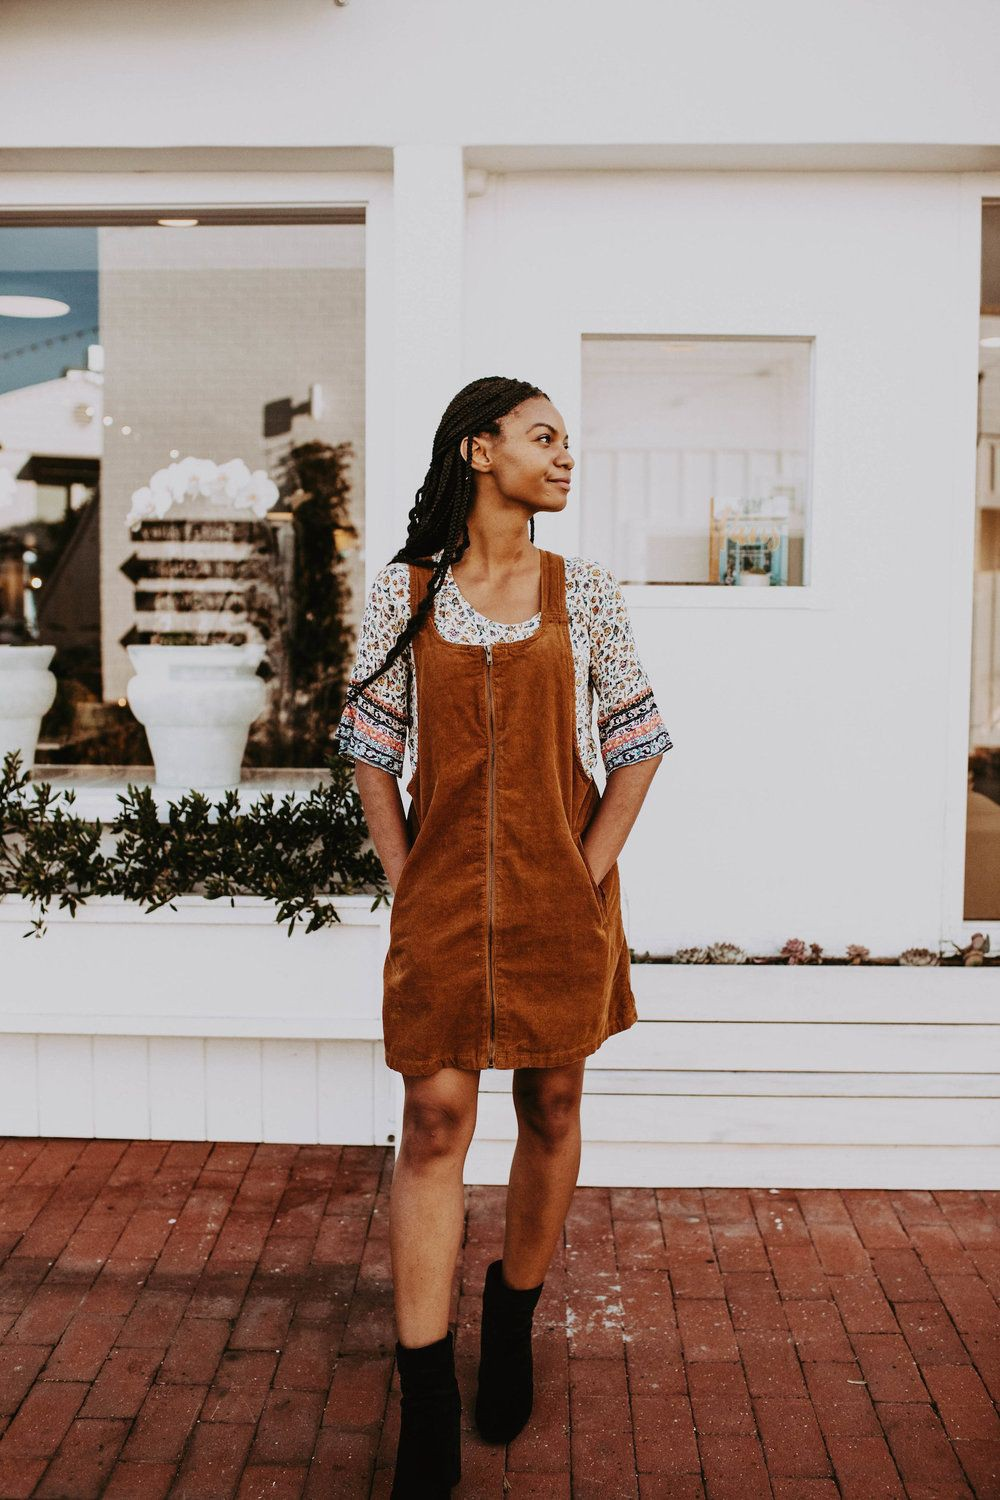 Week Of Outfits Series: A Week Of 1970s-Inspired Outfits With Leah Thomas, The Blogger Behind Gr ...